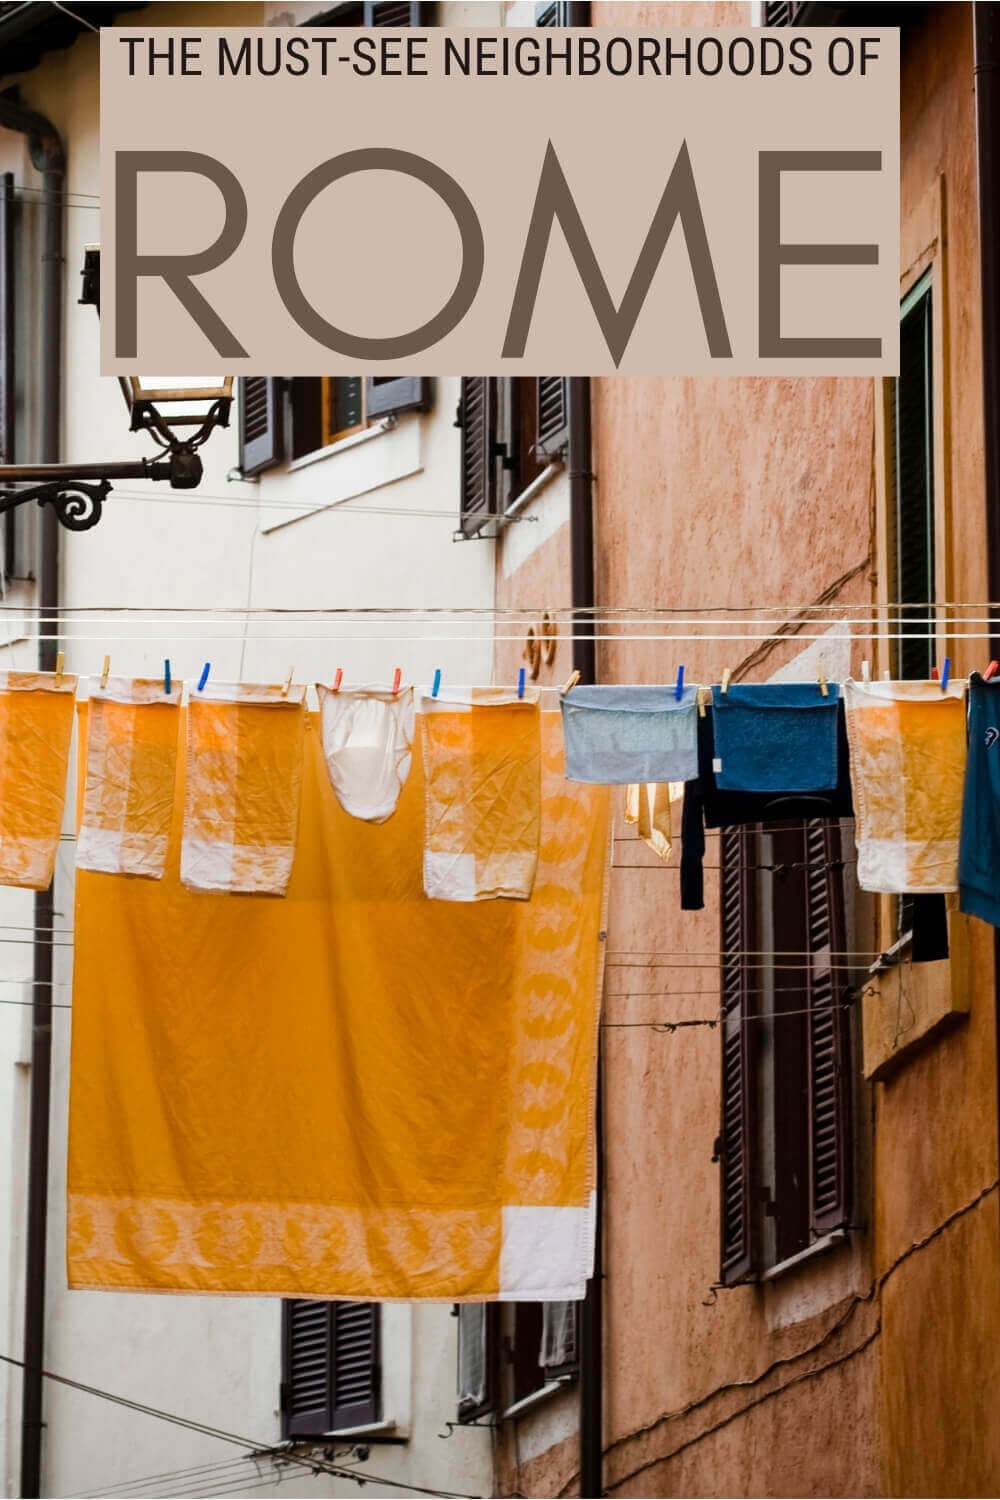 Discover the most charming neighborhoods of Rome - via @strictlyrome